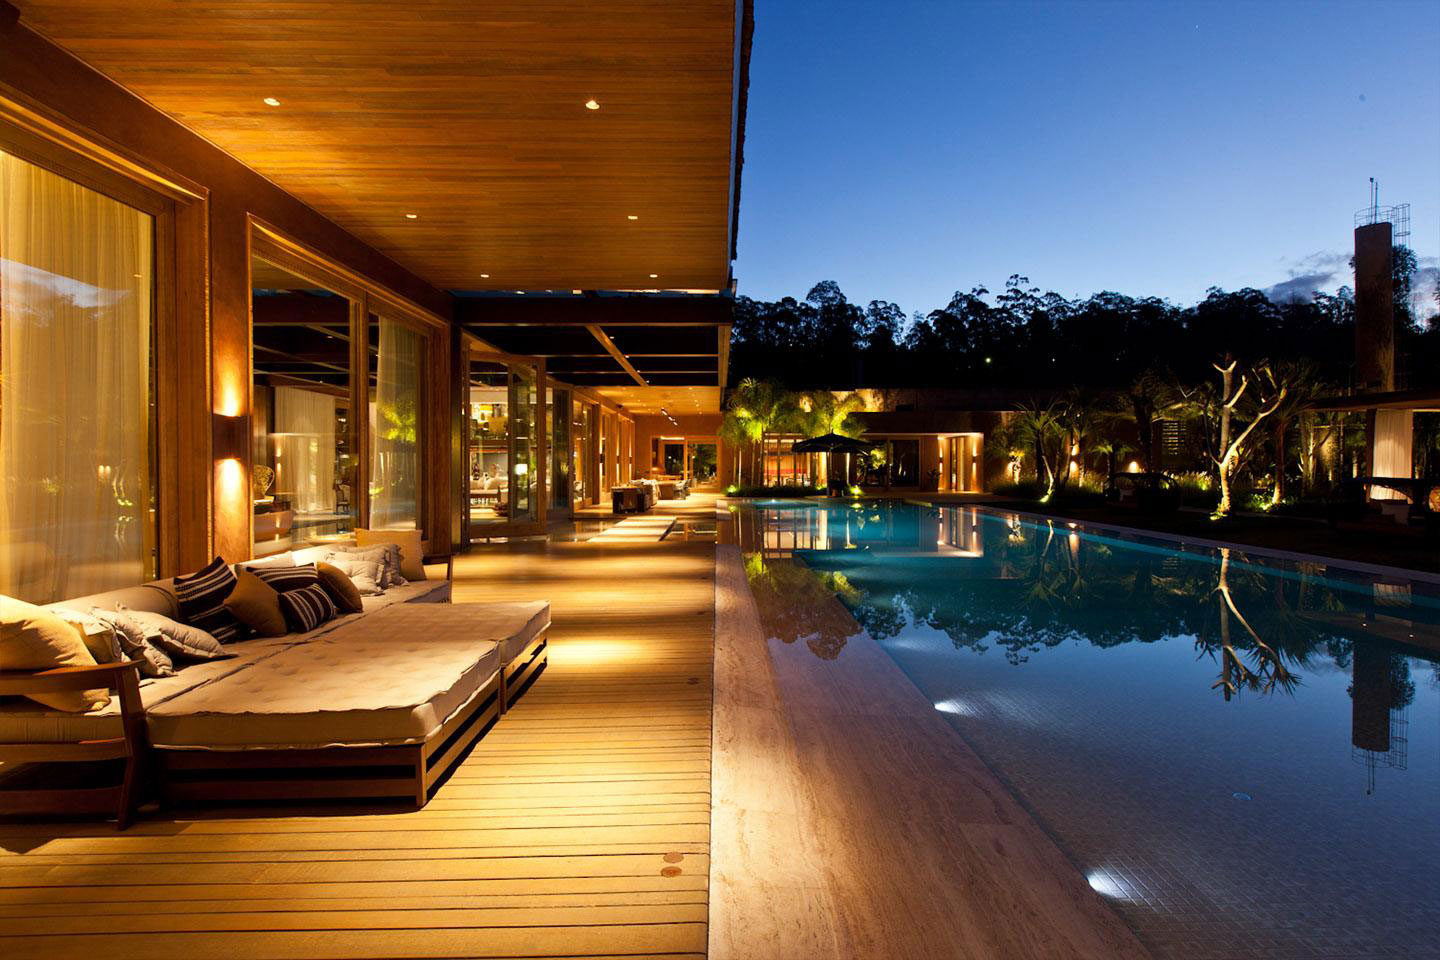 Pool, Lighting, Veranda, Terrace, House in Nova Lima, Brazil